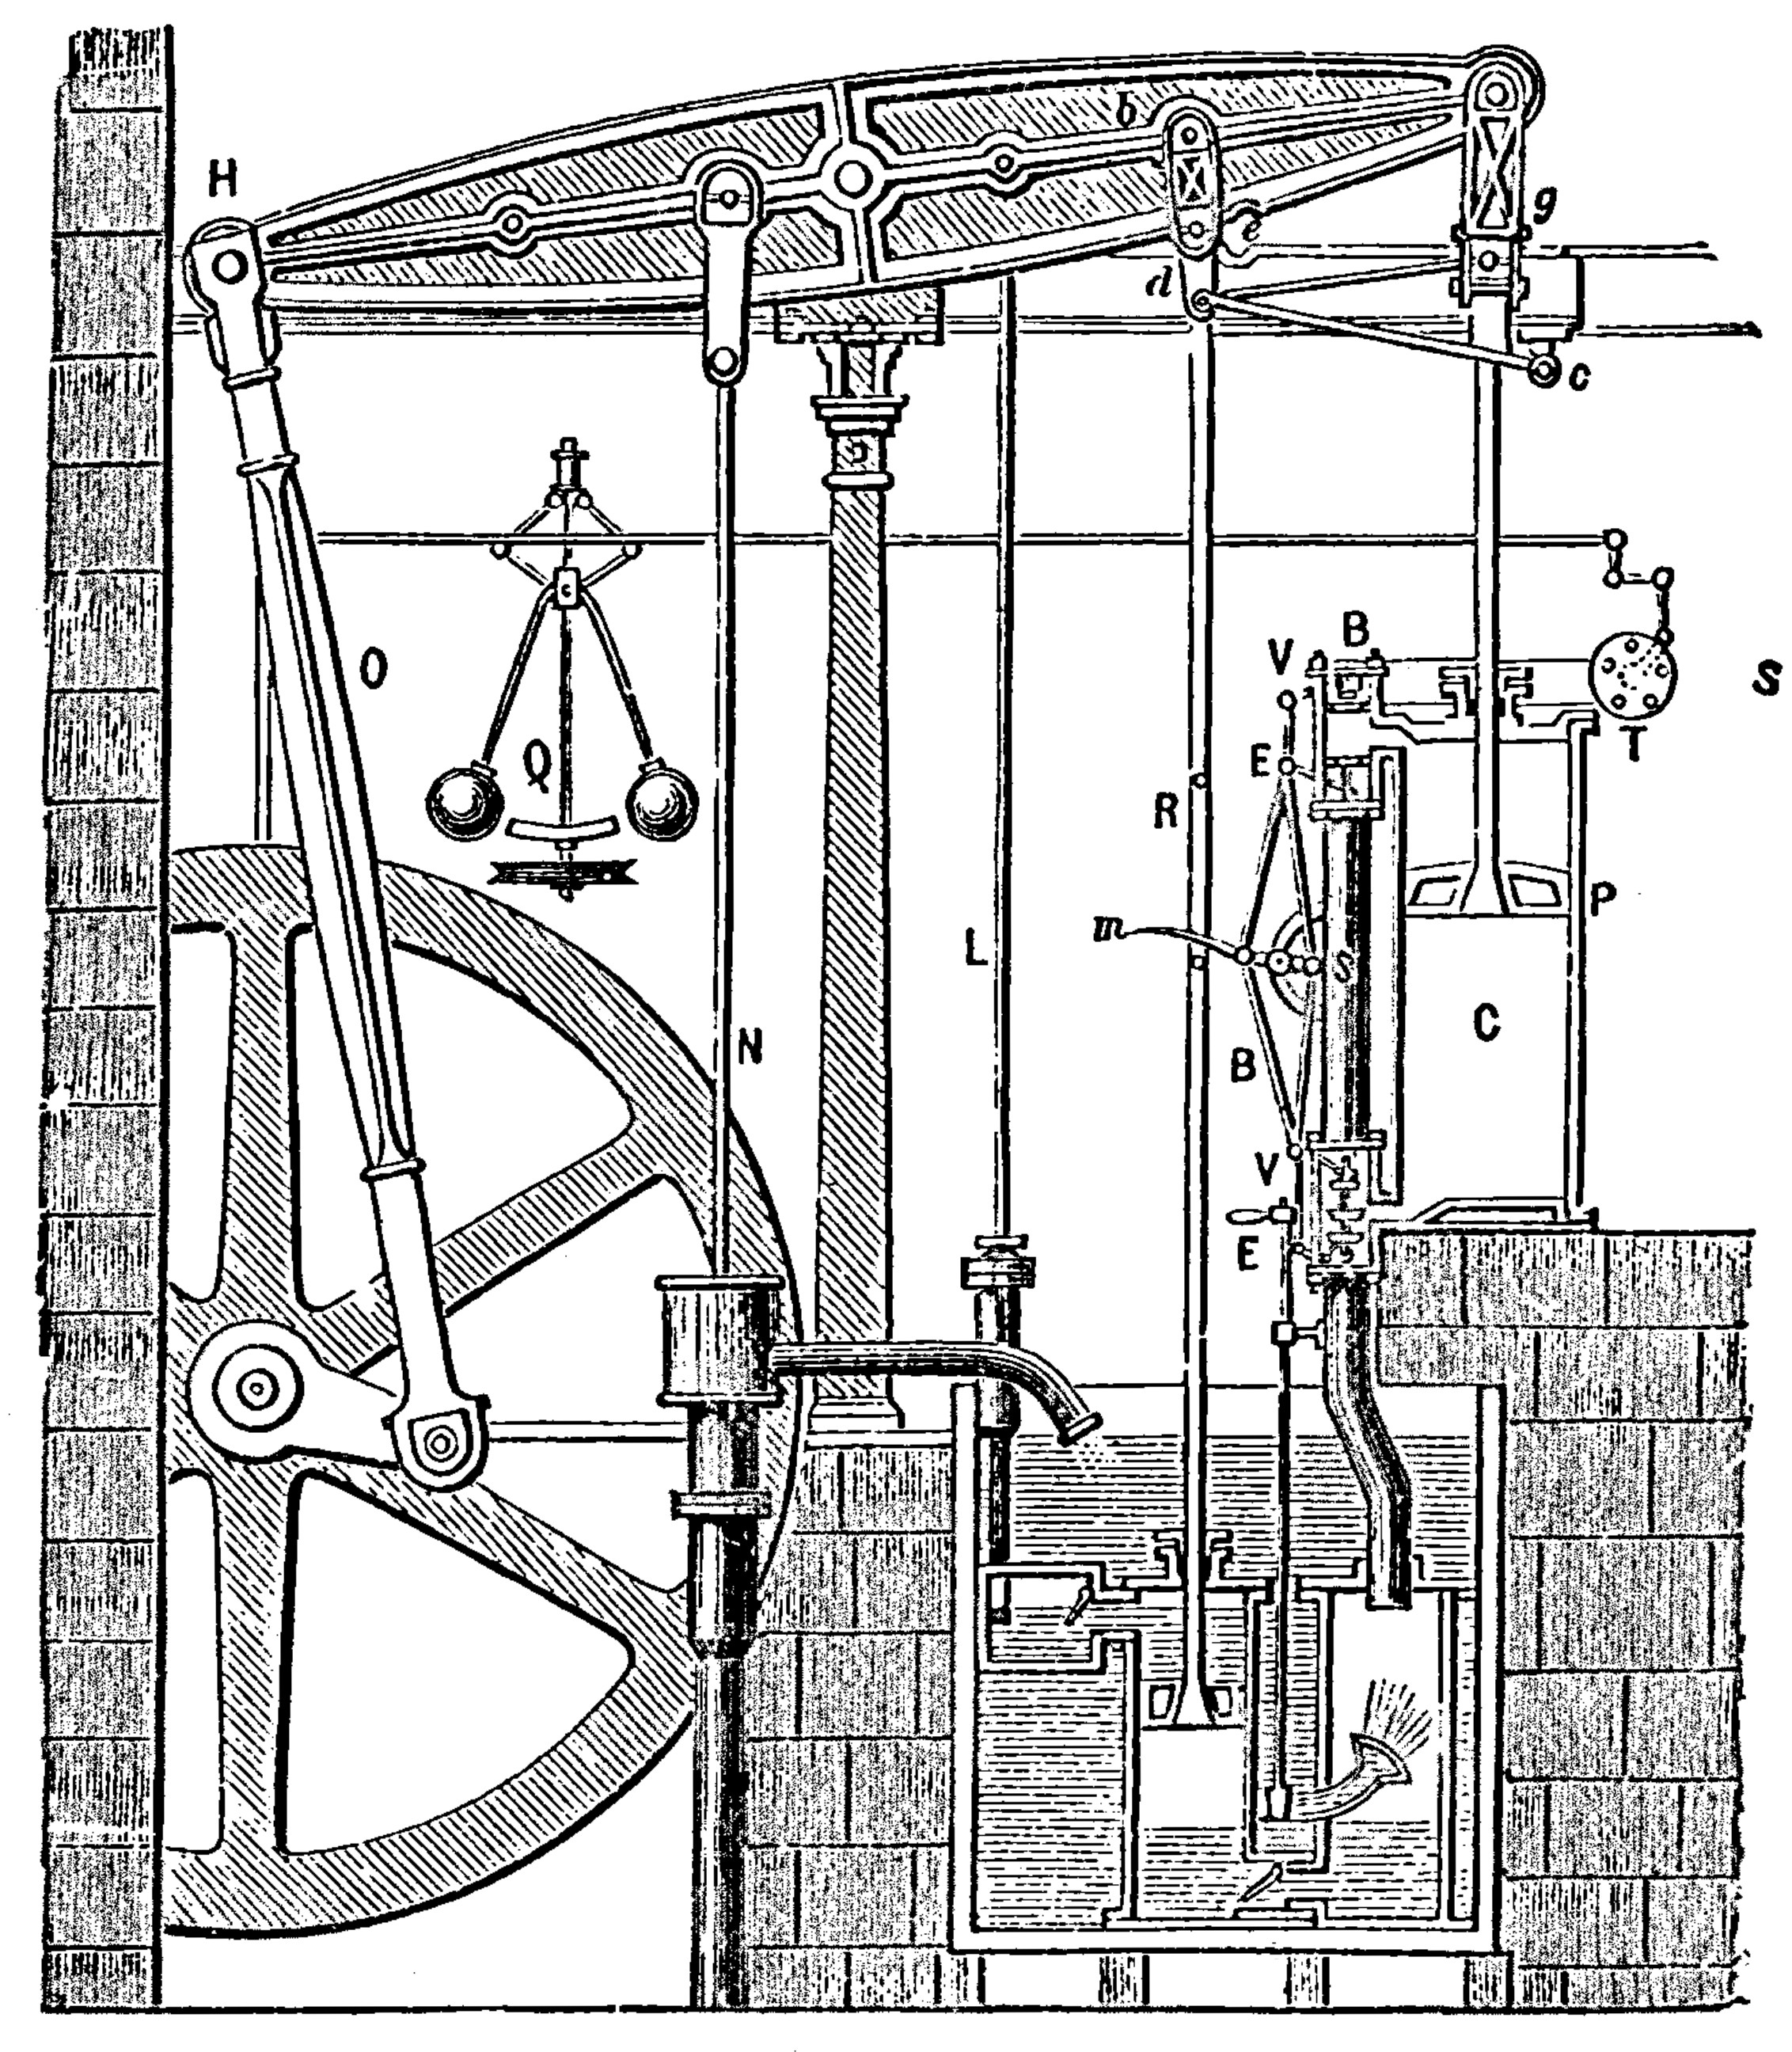 Simple Steam Engine Diagram Mediating Machines A Proposal for A Big Picture Of the History Of Of Simple Steam Engine Diagram